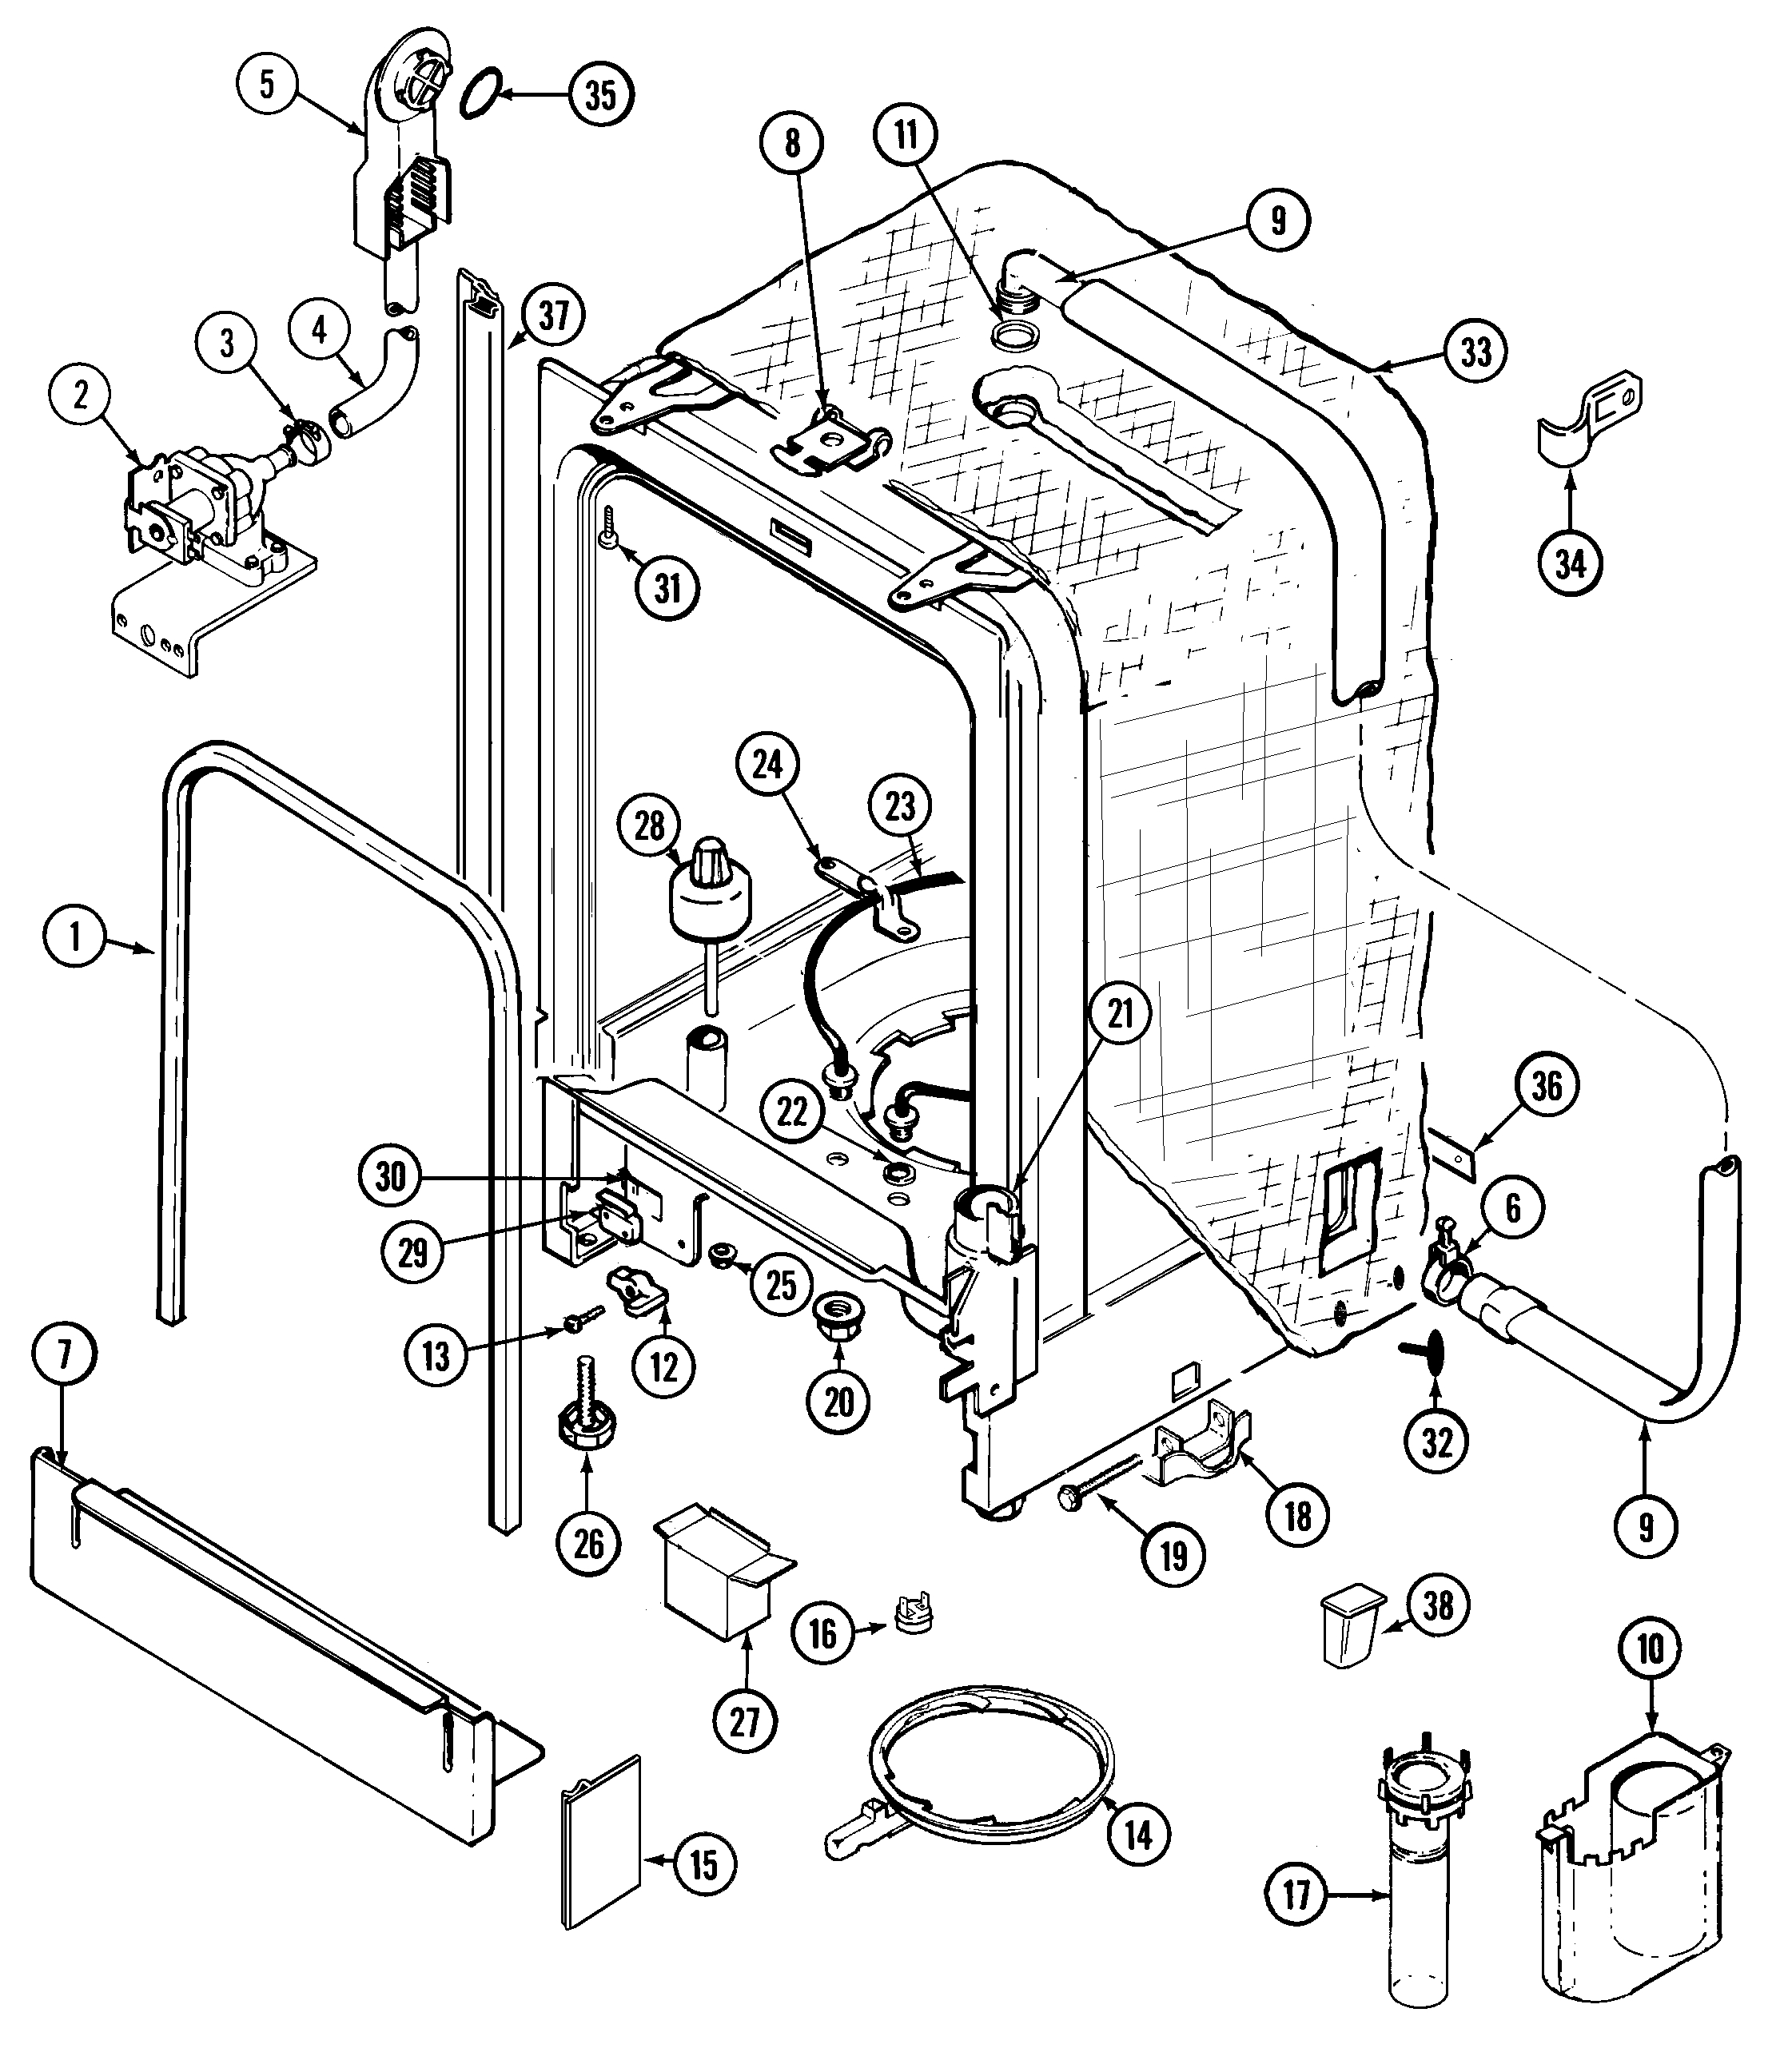 whirlpool dishwasher schematic information schematics wiring diagrams Dryer Wiring Schematics